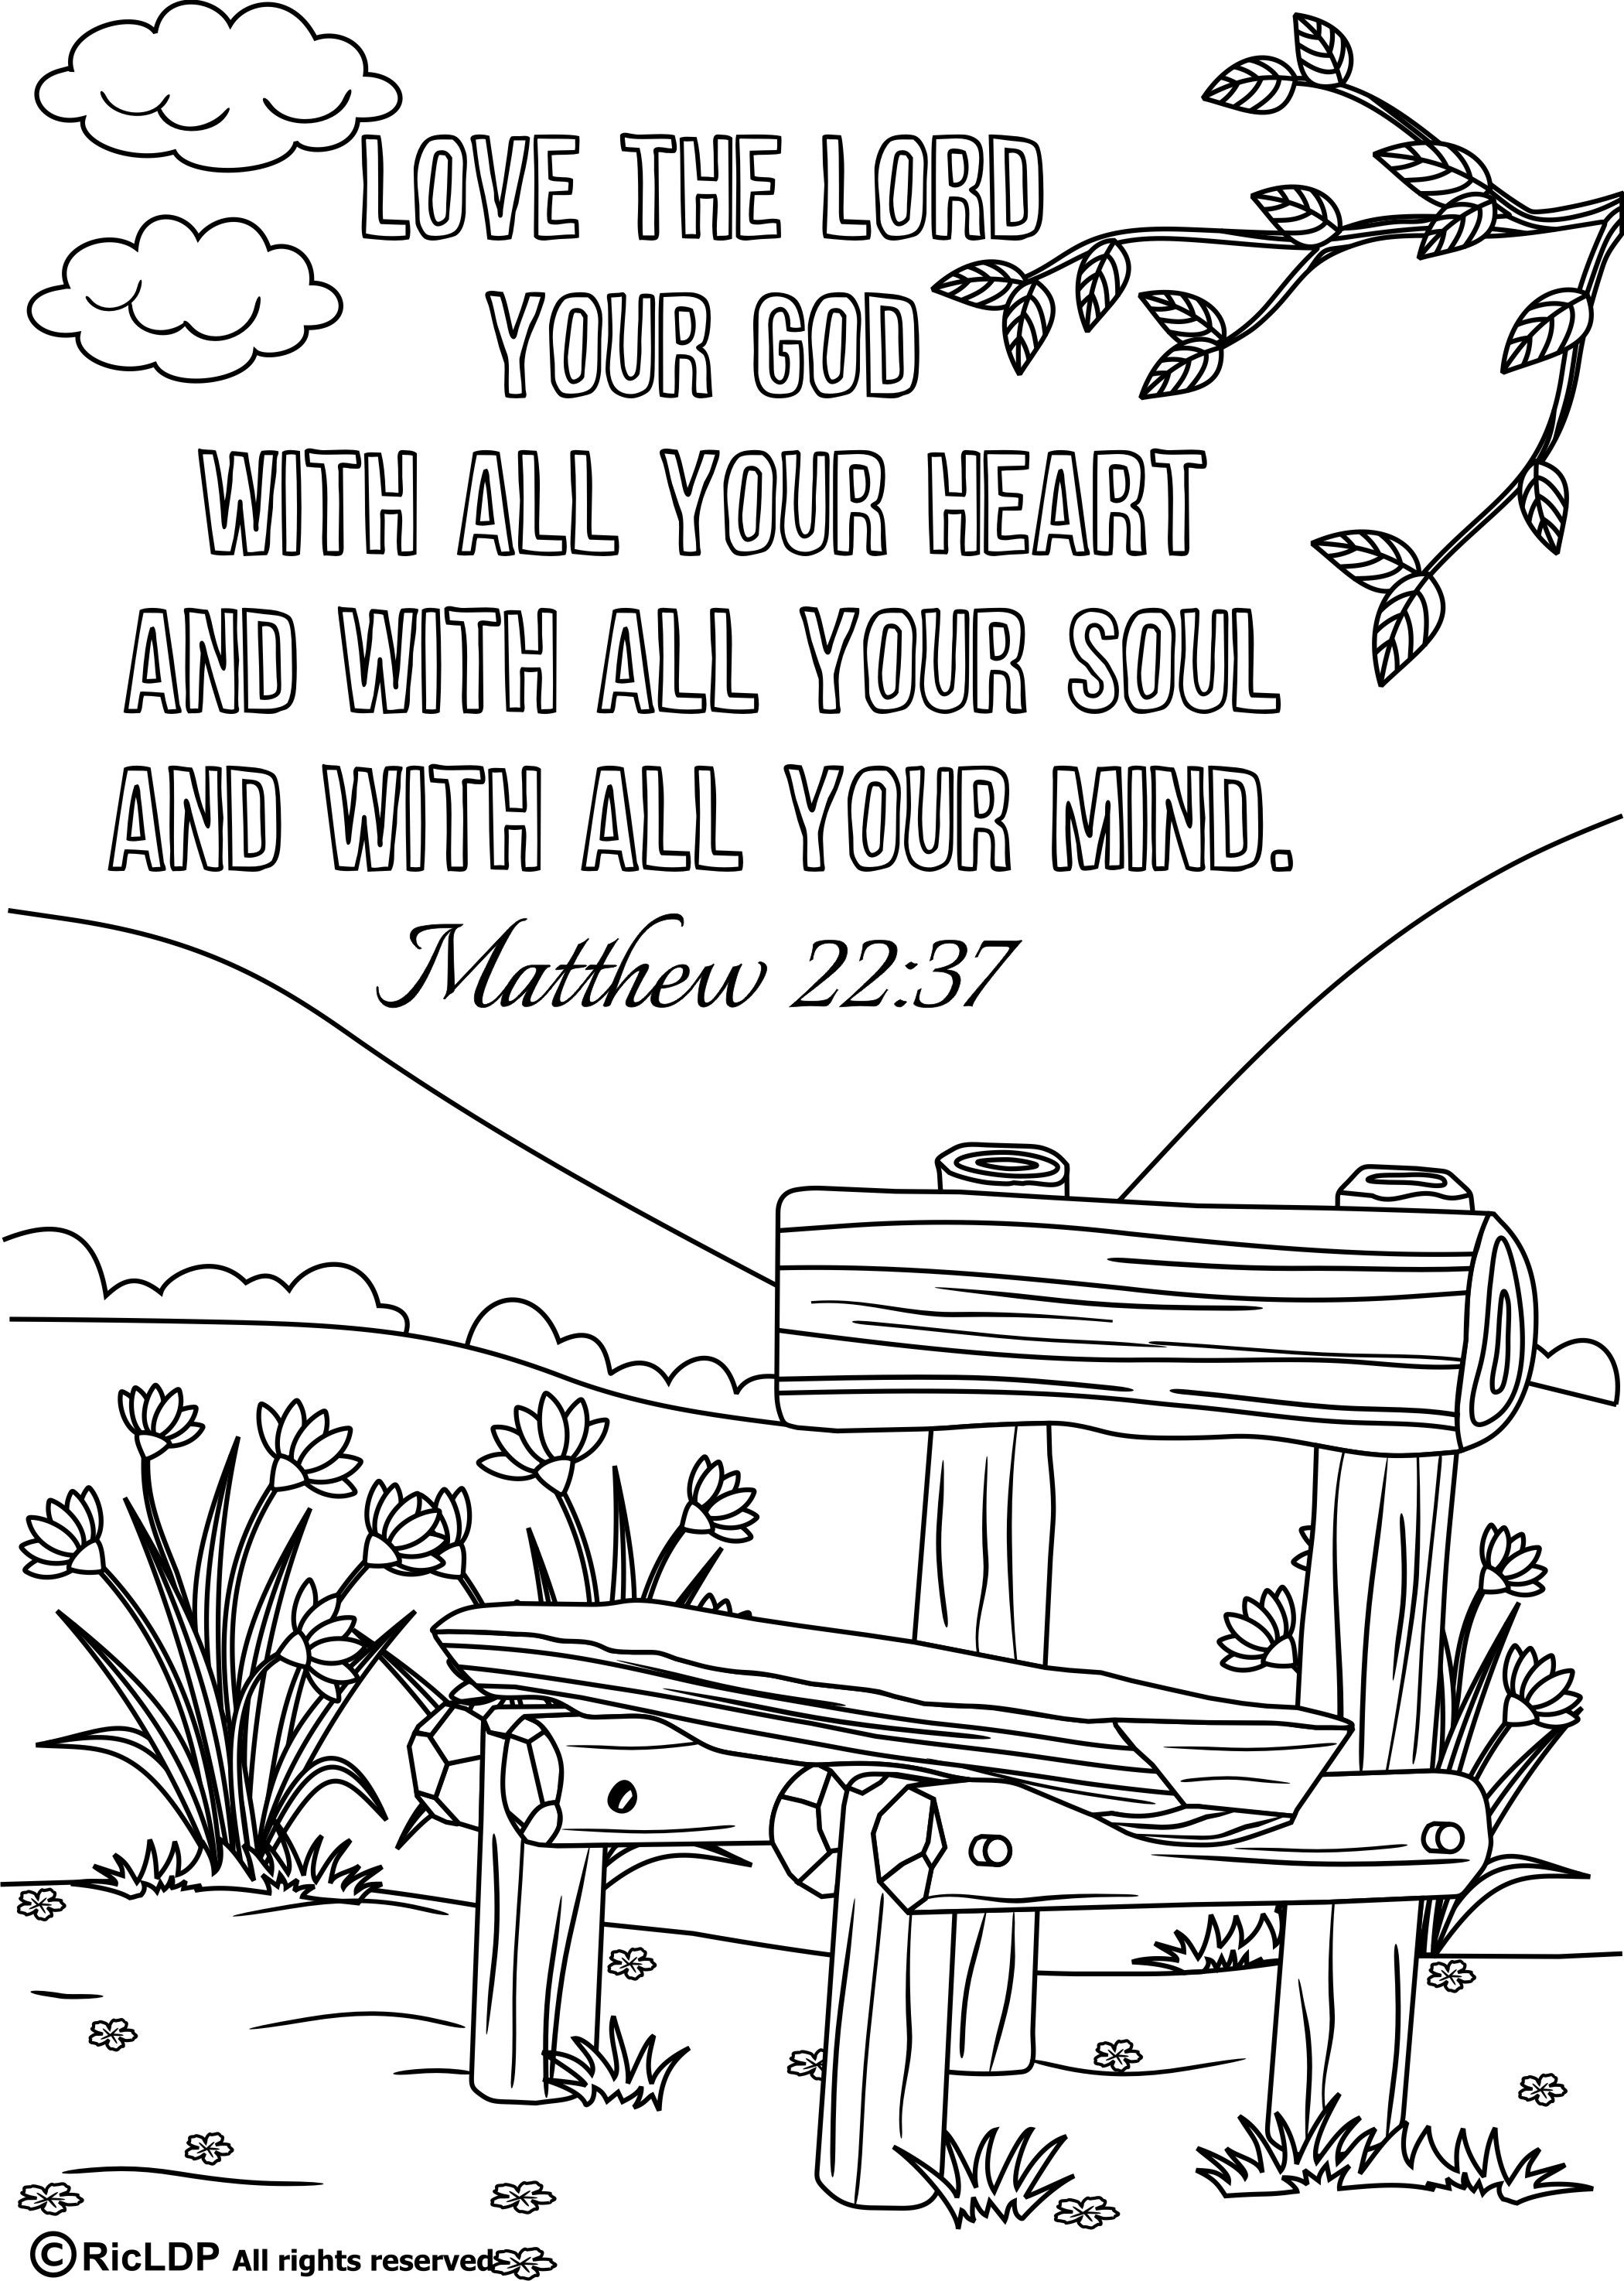 15 Printable Bible Verse Coloring Pages | Verses, Bible and Pdf